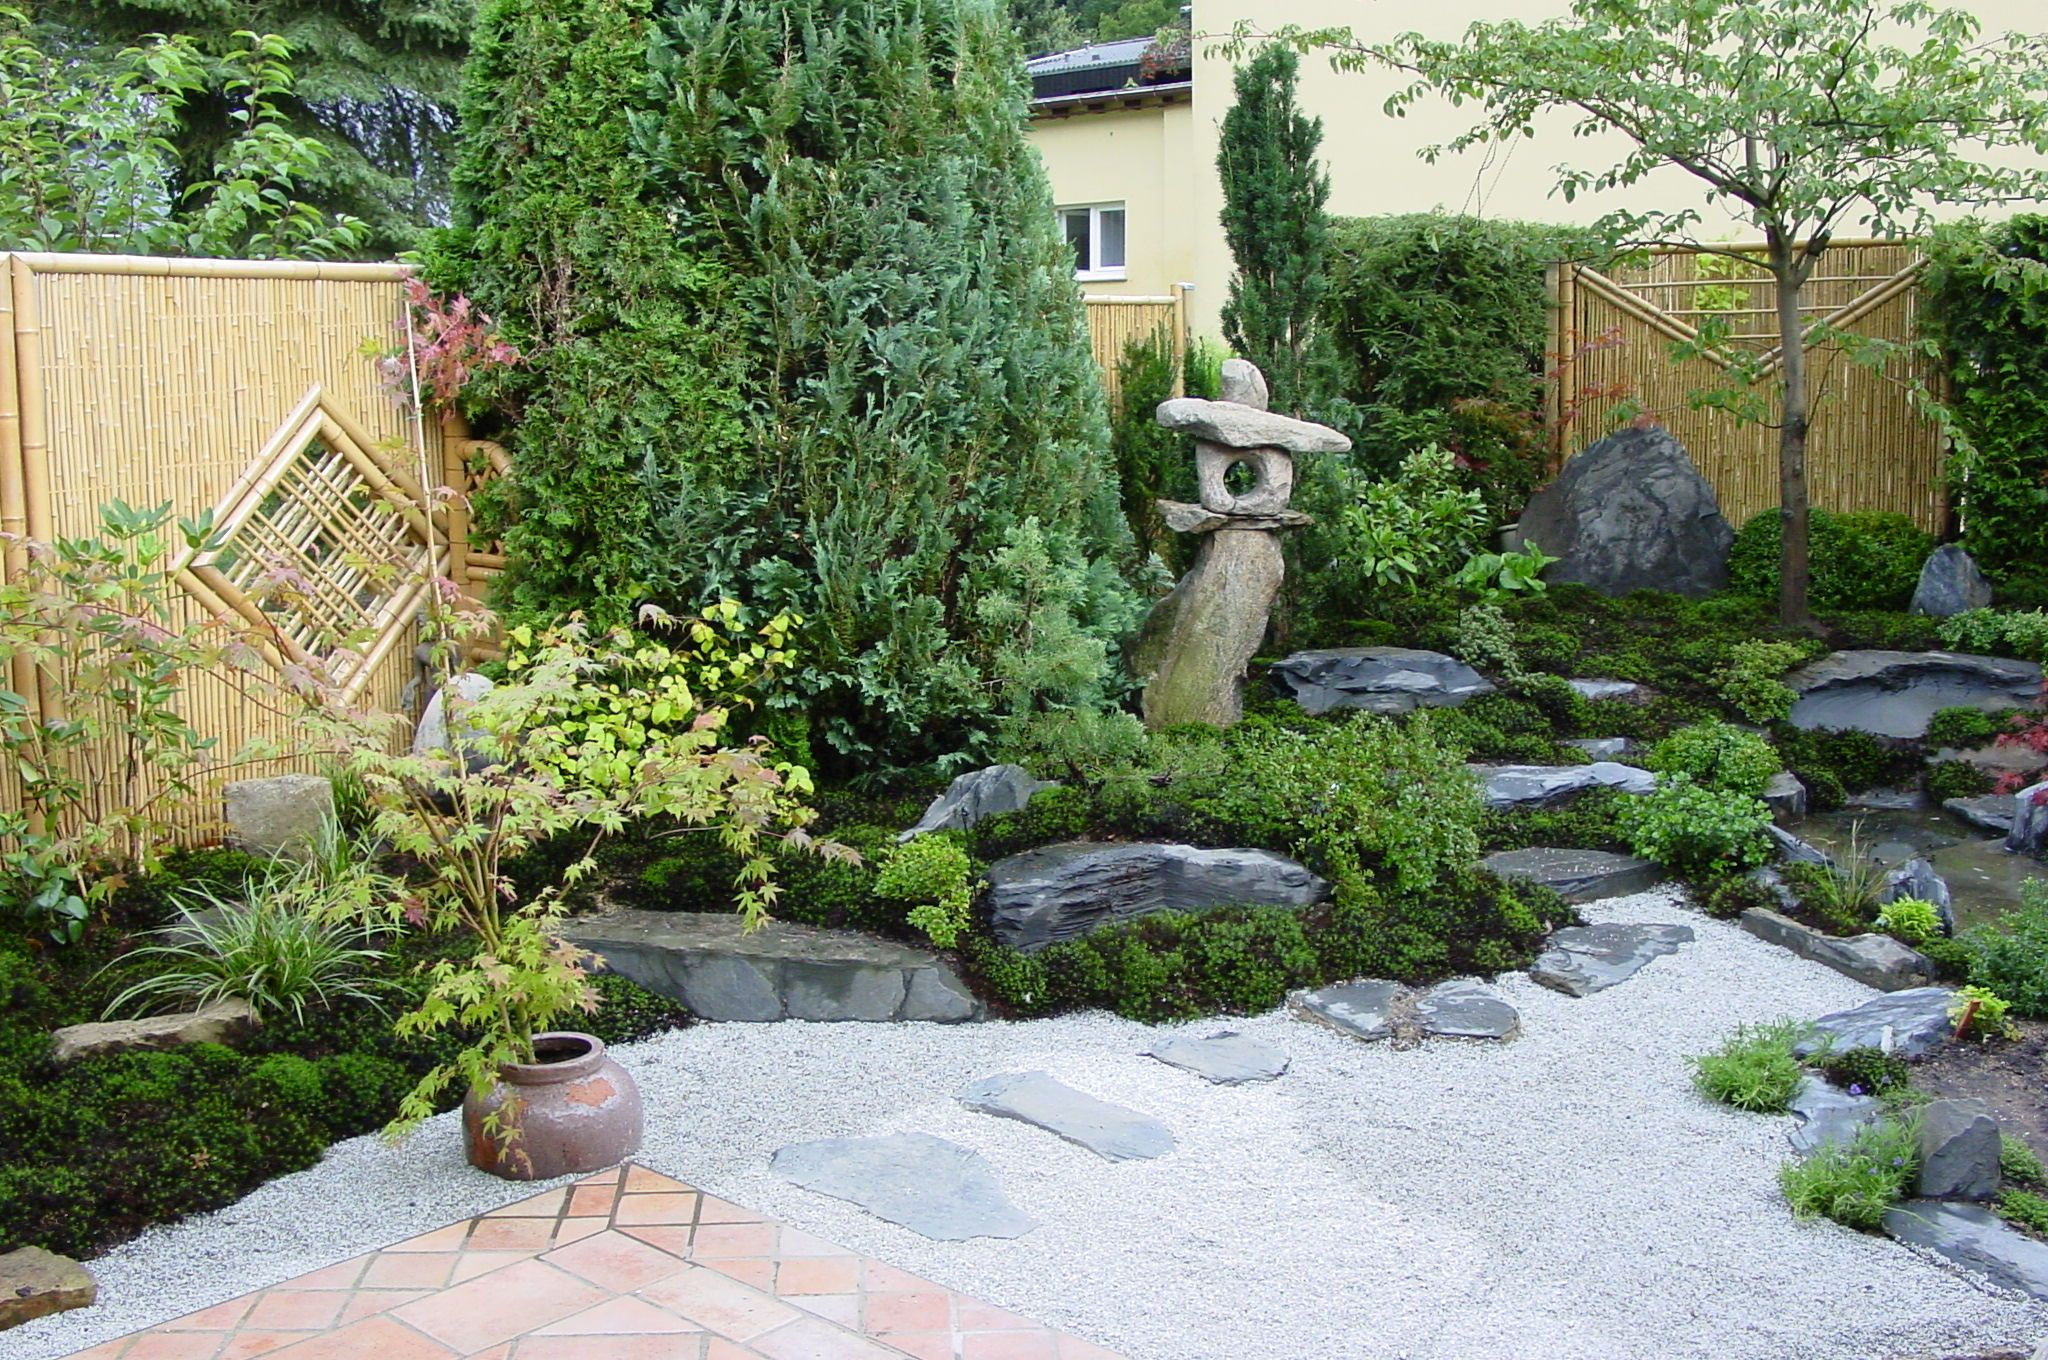 moosgarten japanese gardens designed by. Black Bedroom Furniture Sets. Home Design Ideas